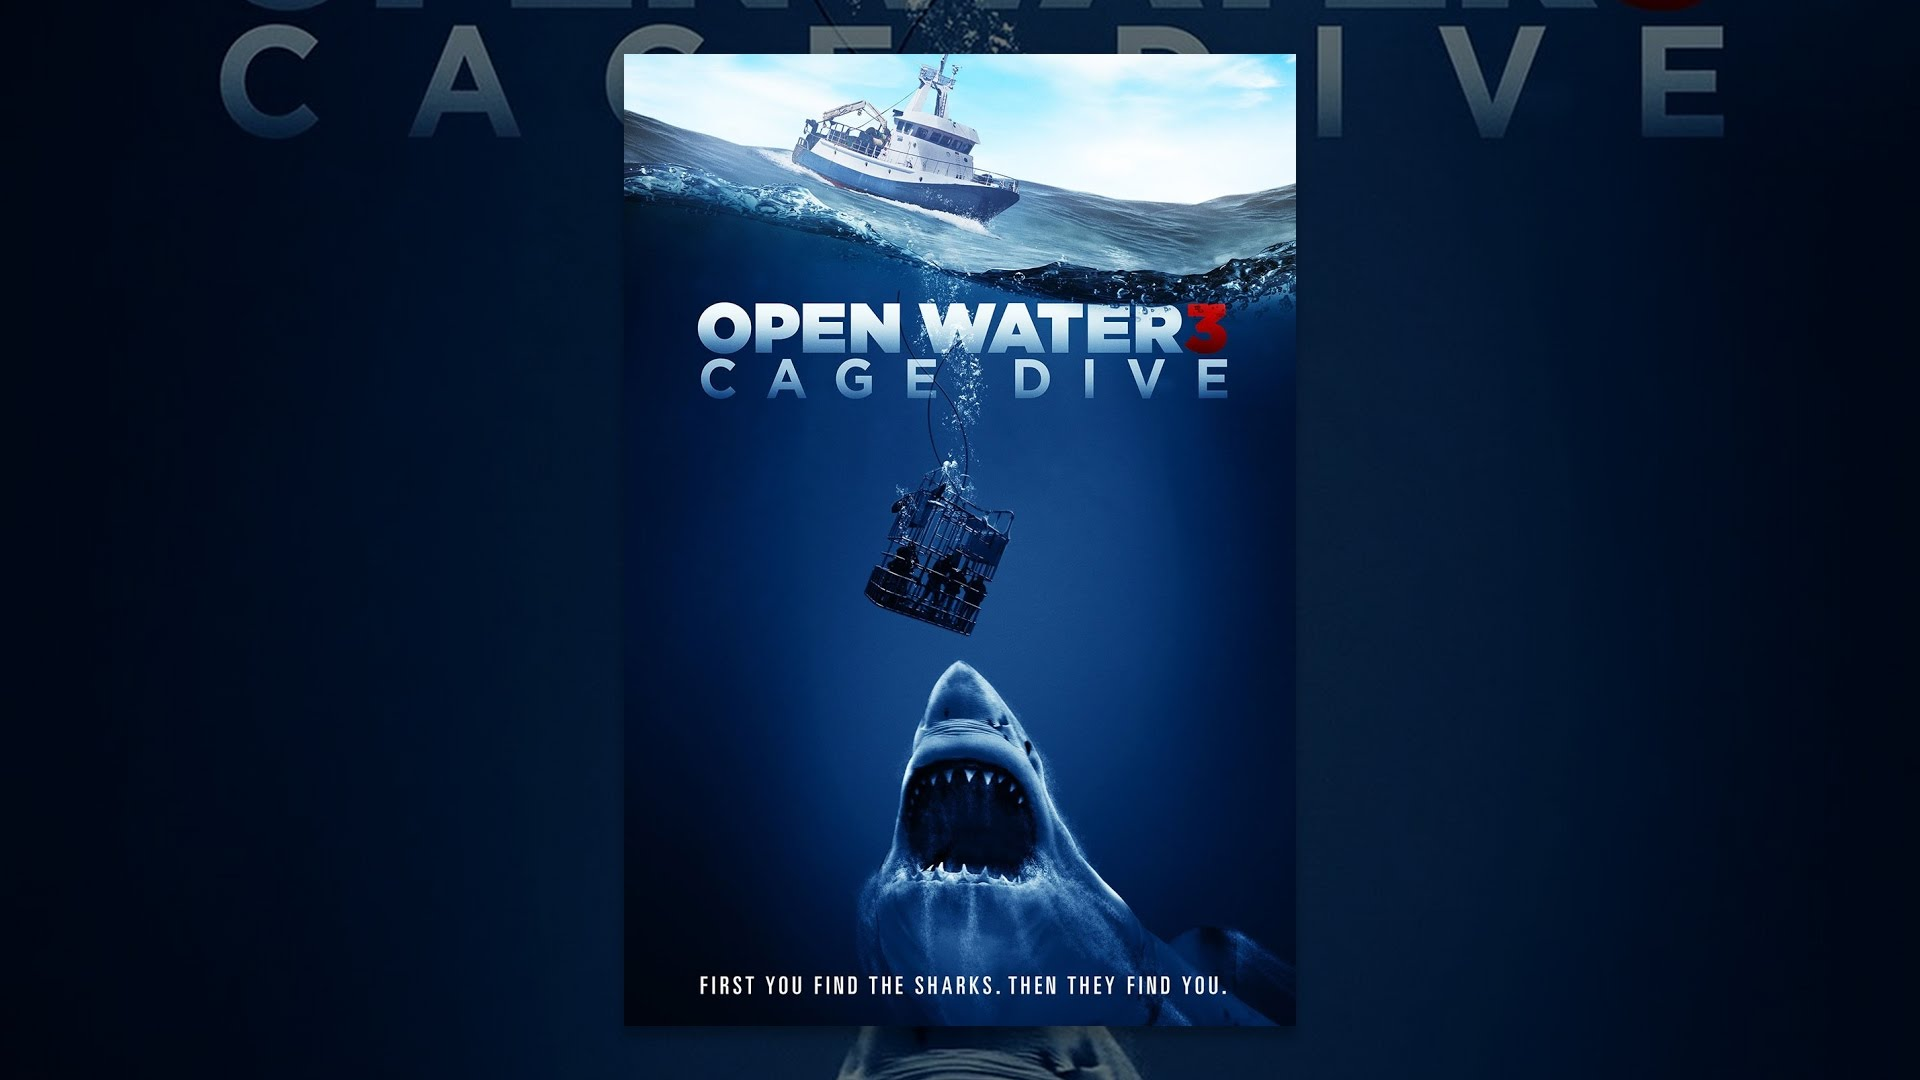 Open water 3 cage dive youtube - Open water 3 cage dive ...